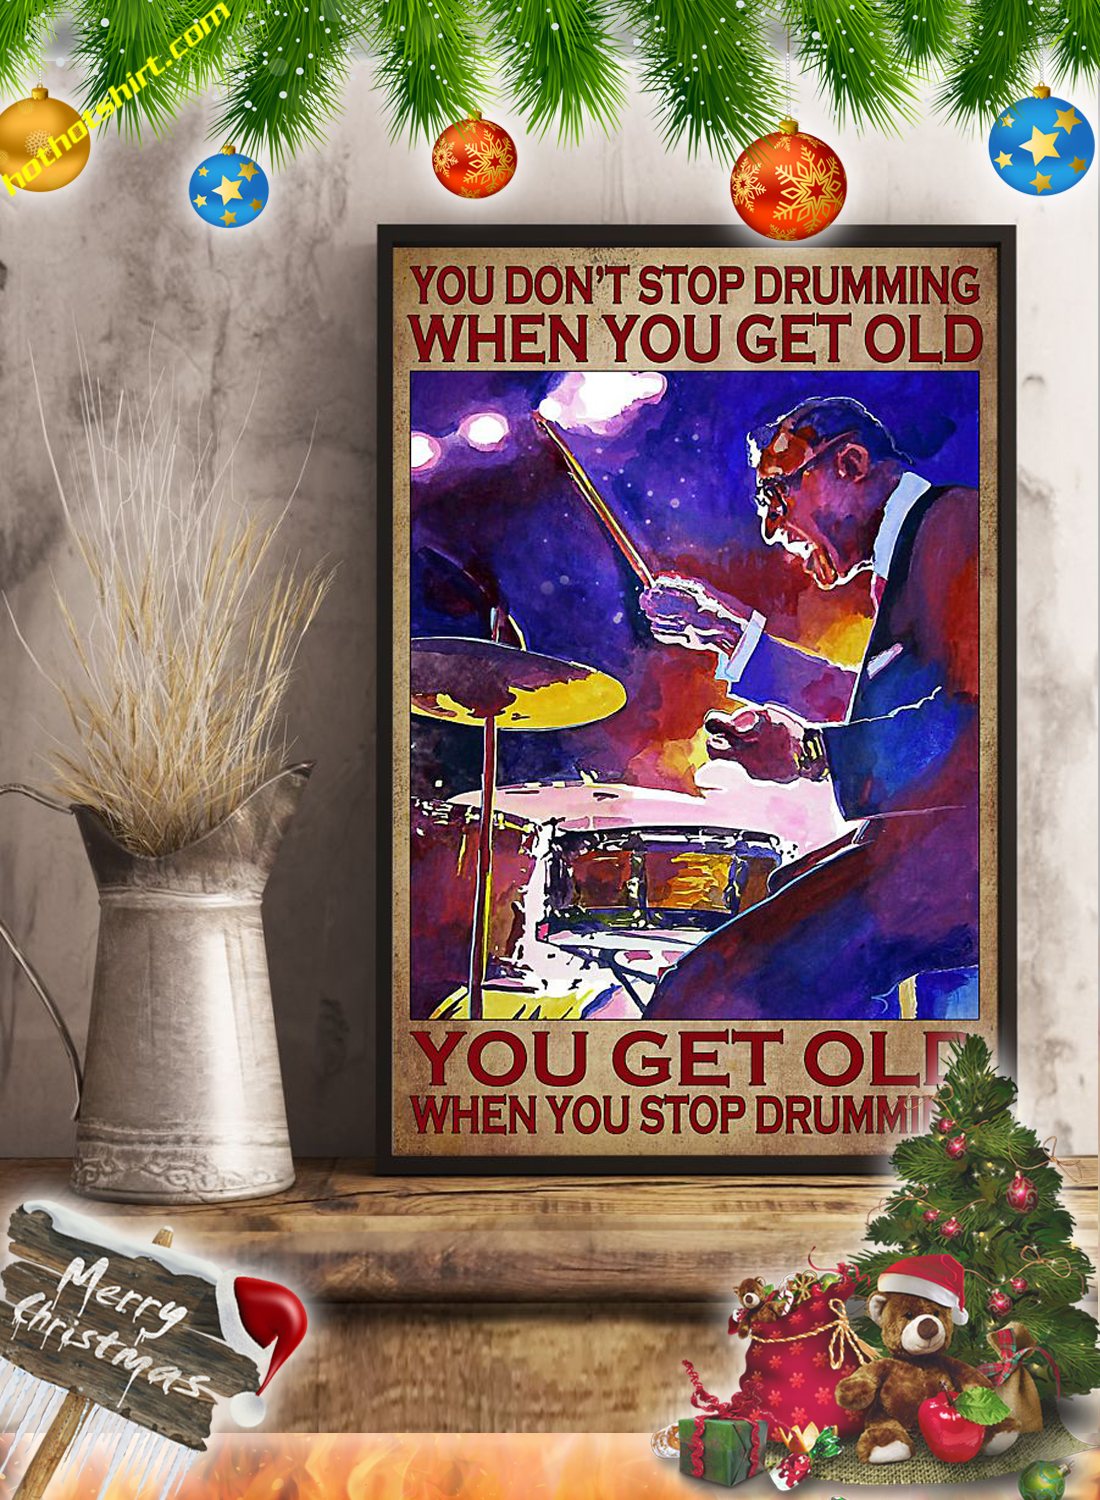 You don't stop drumming when you get old you get old when you stop drumming poster 2